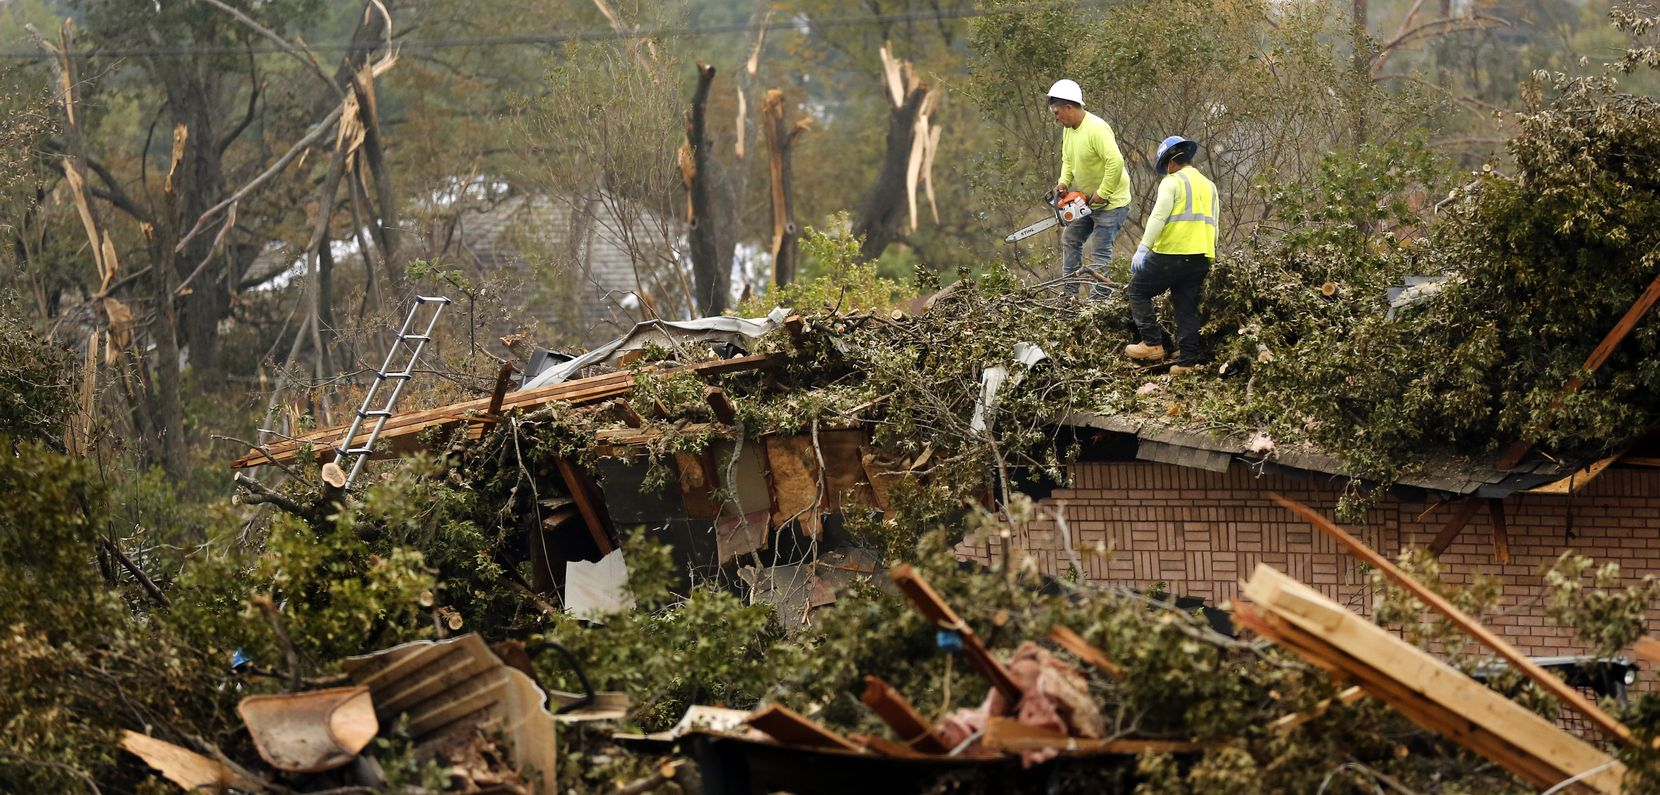 Workers cut up and remove a tree that toppled onto a home on Royal Lane in northwest Dallas.